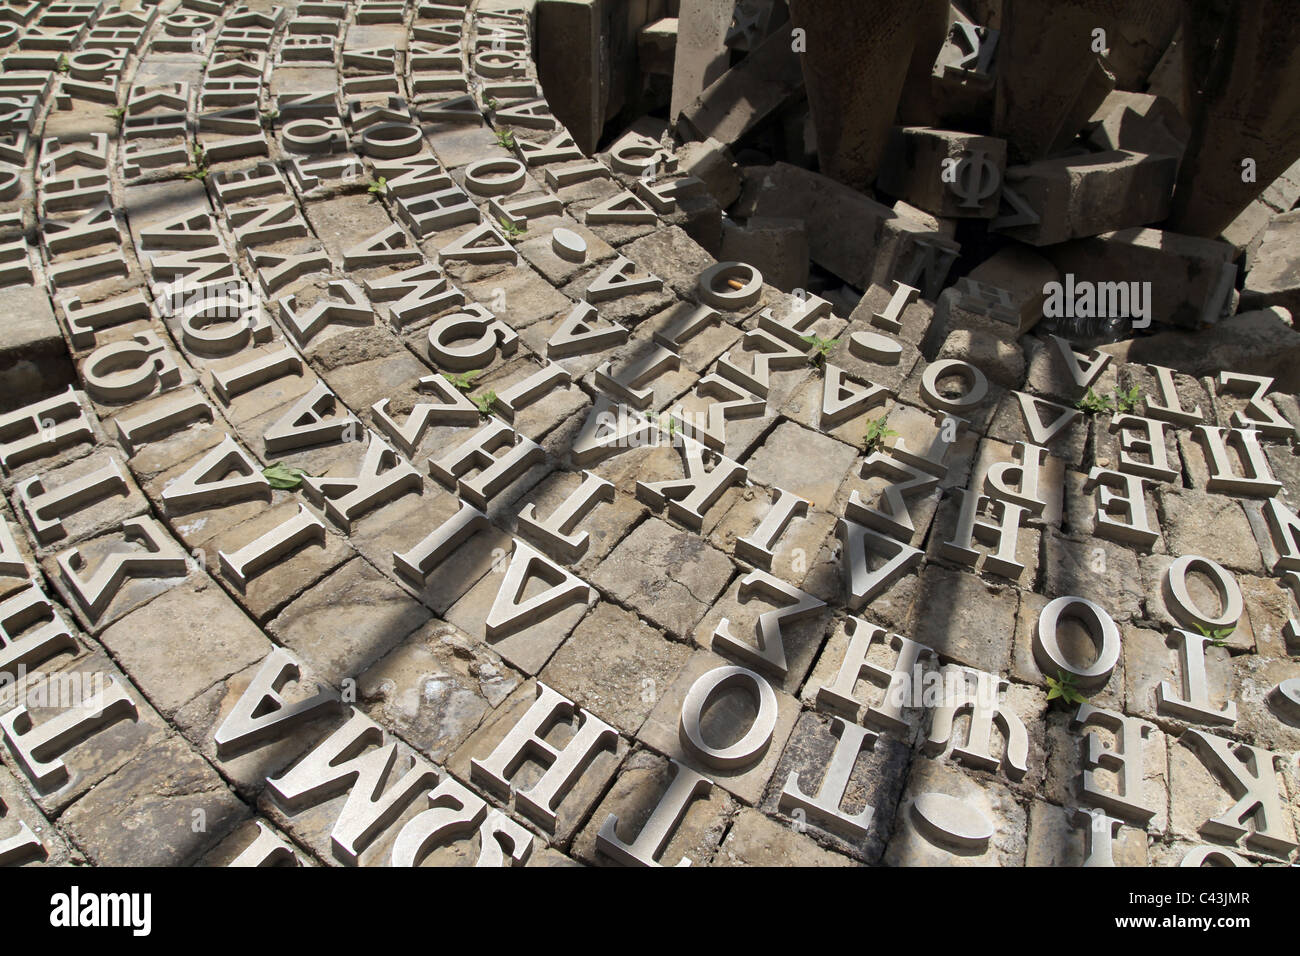 Cyprus. 'Resolution' art installation for peace in Lydra street by the Green Line in Nicosia - Stock Image